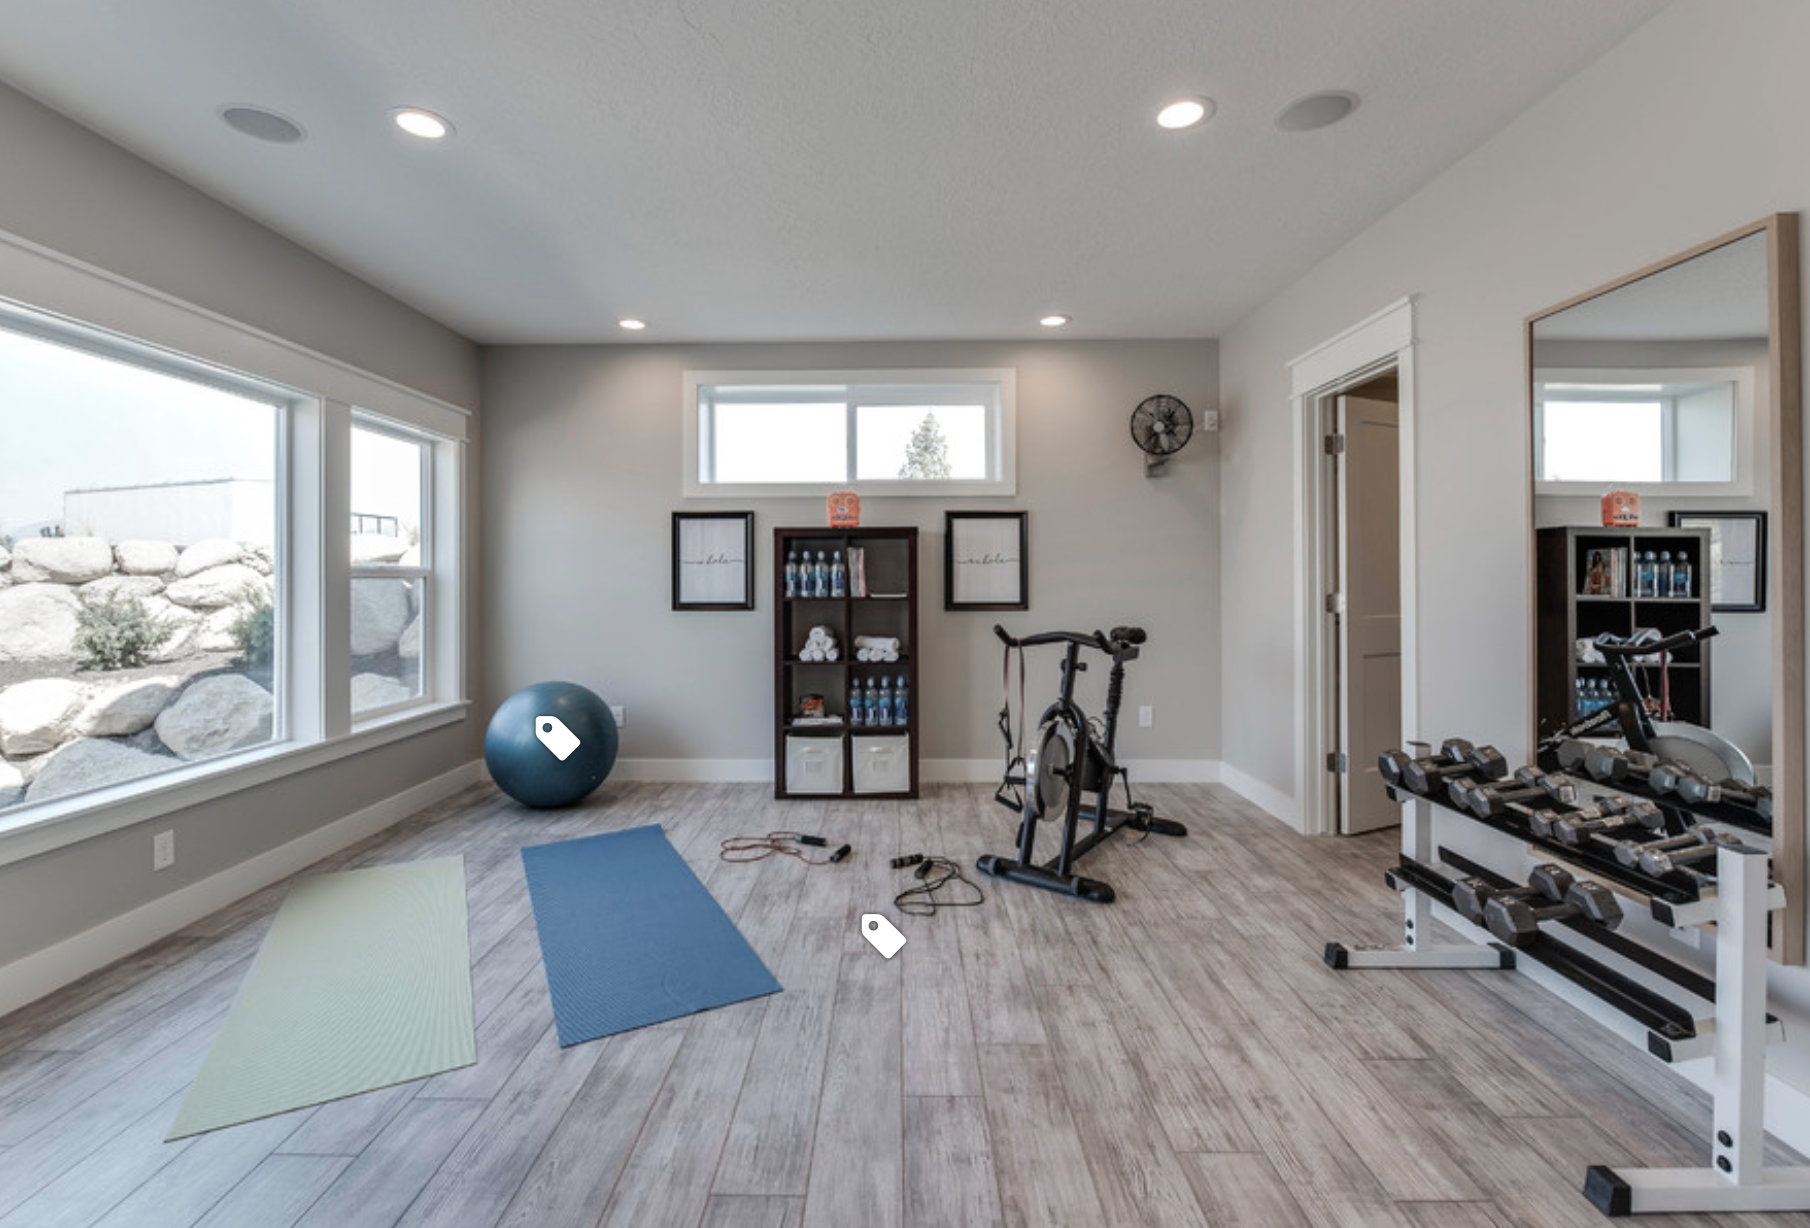 Pin By Emily Arce On Home Design Gym Room At Home Workout Room Home Home Gym Flooring